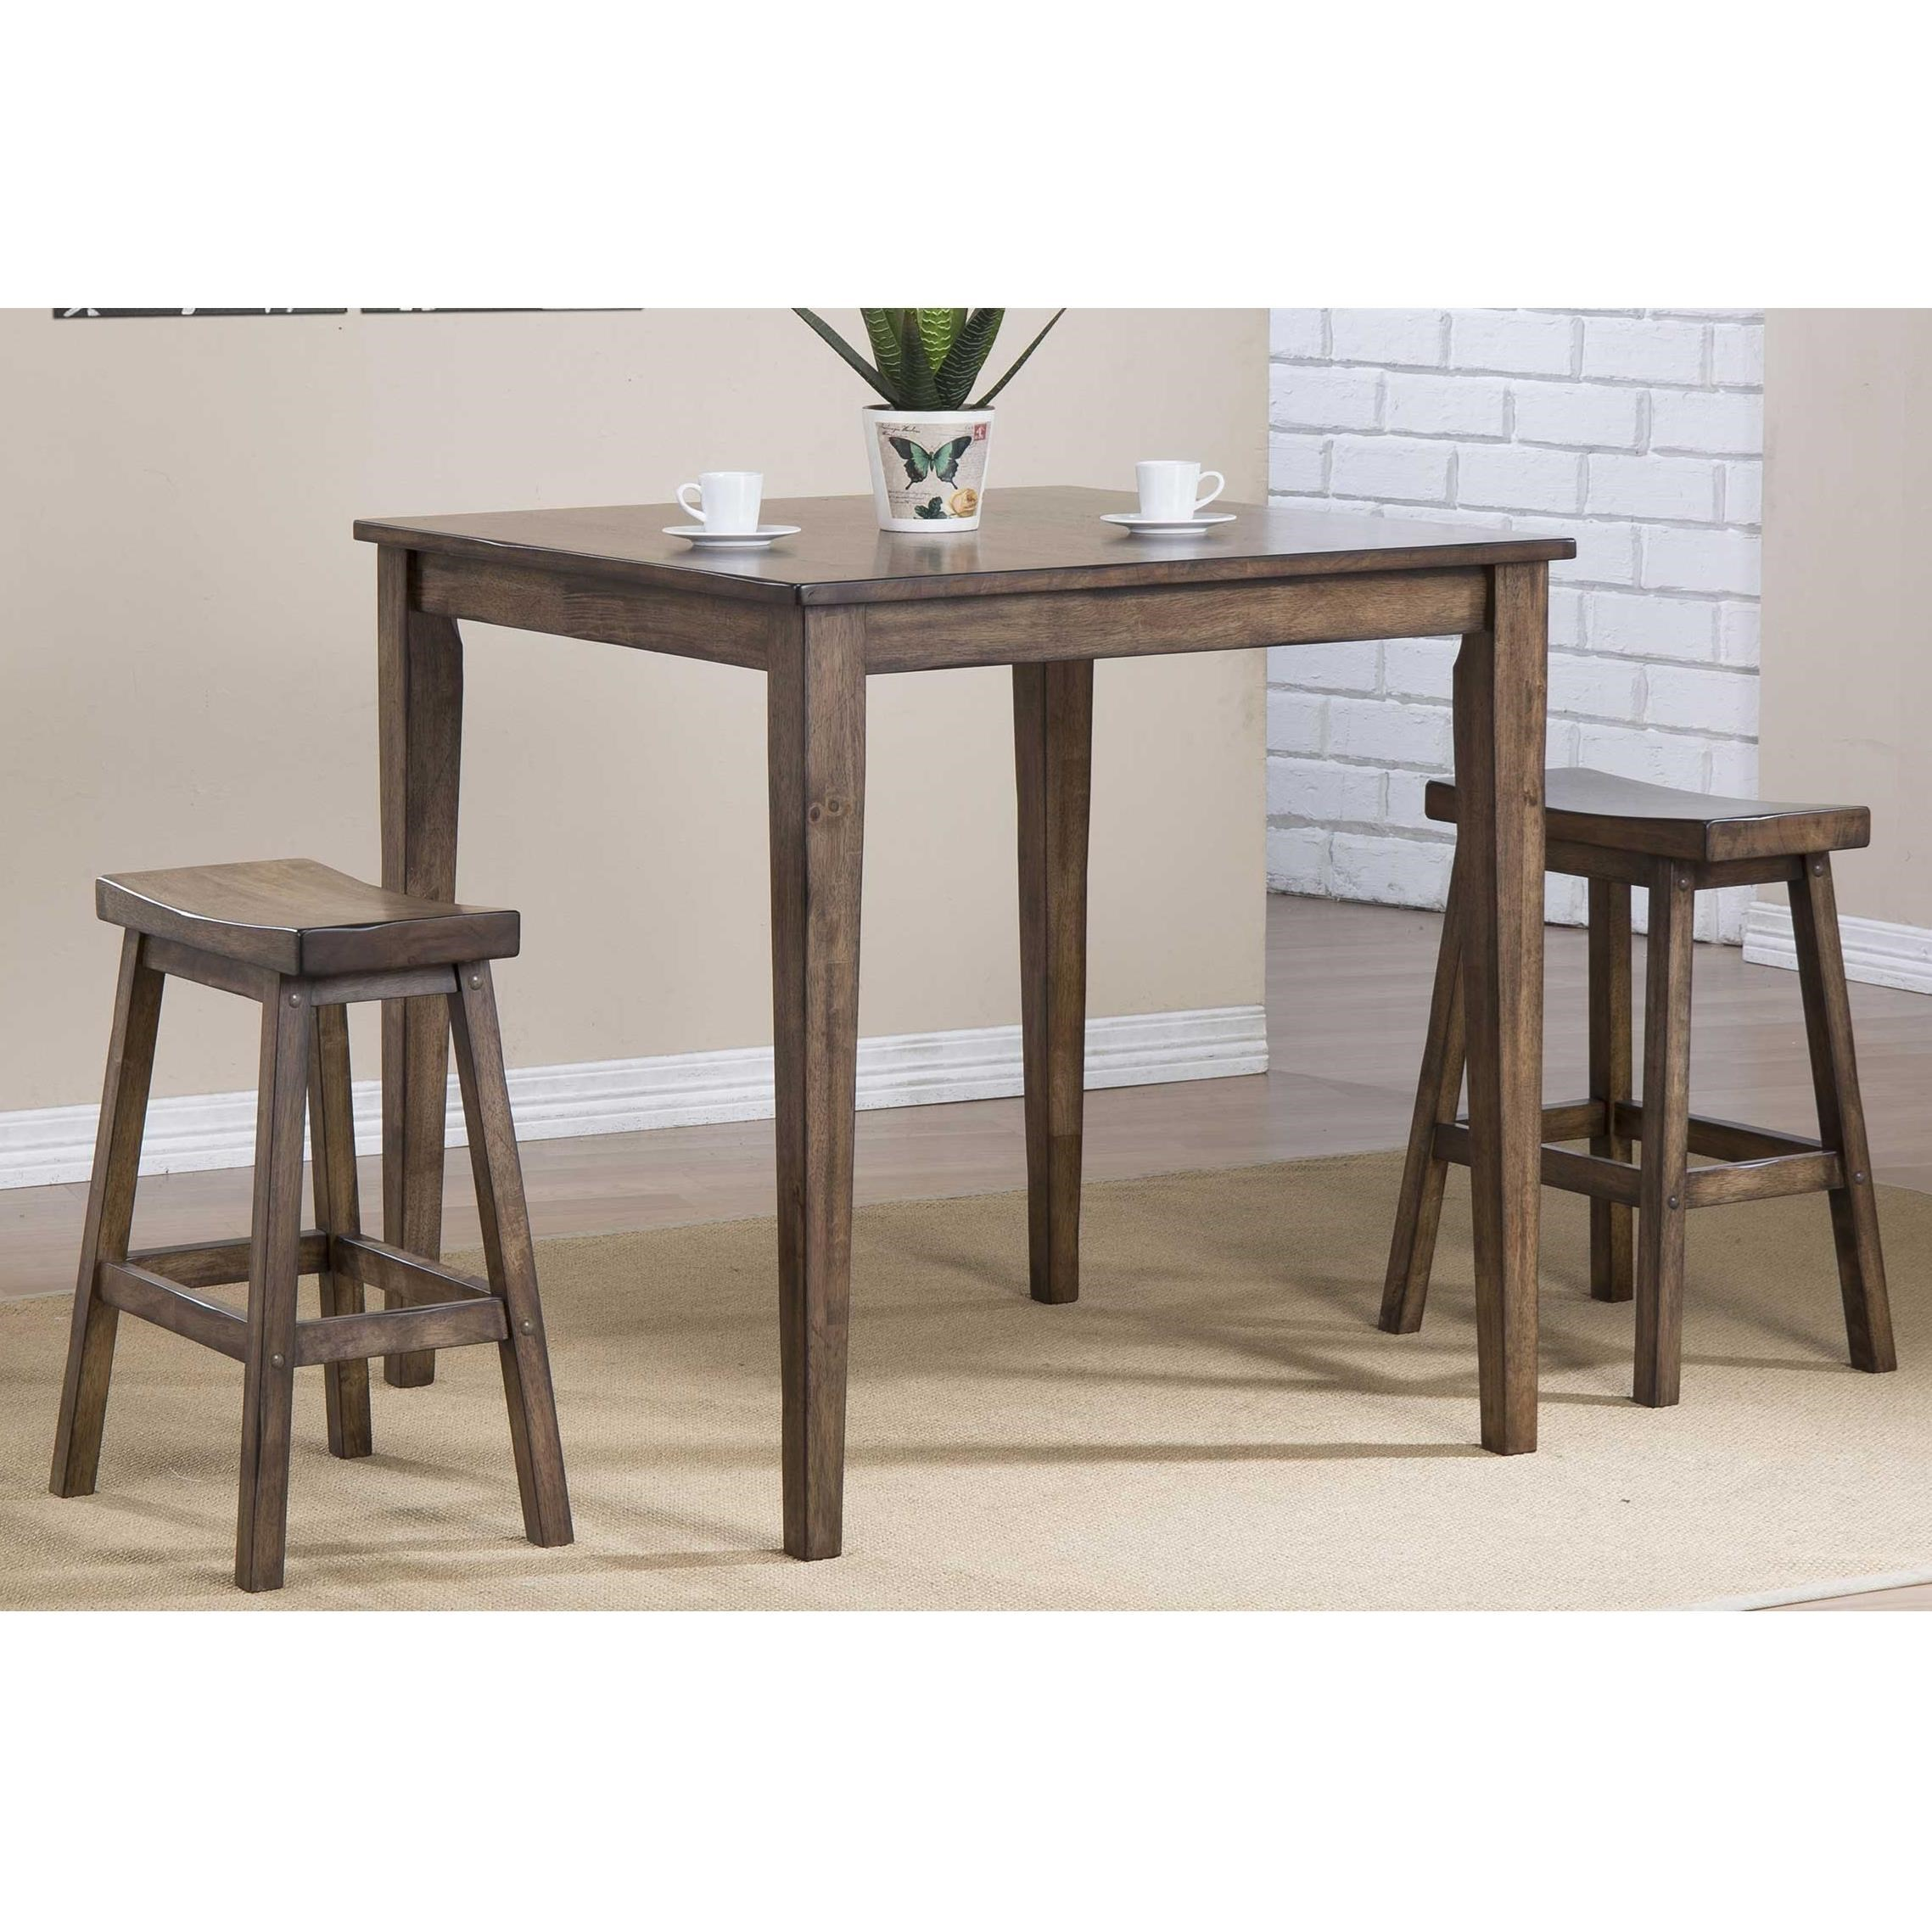 Carmel 3 Piece Counter Height Dining Set